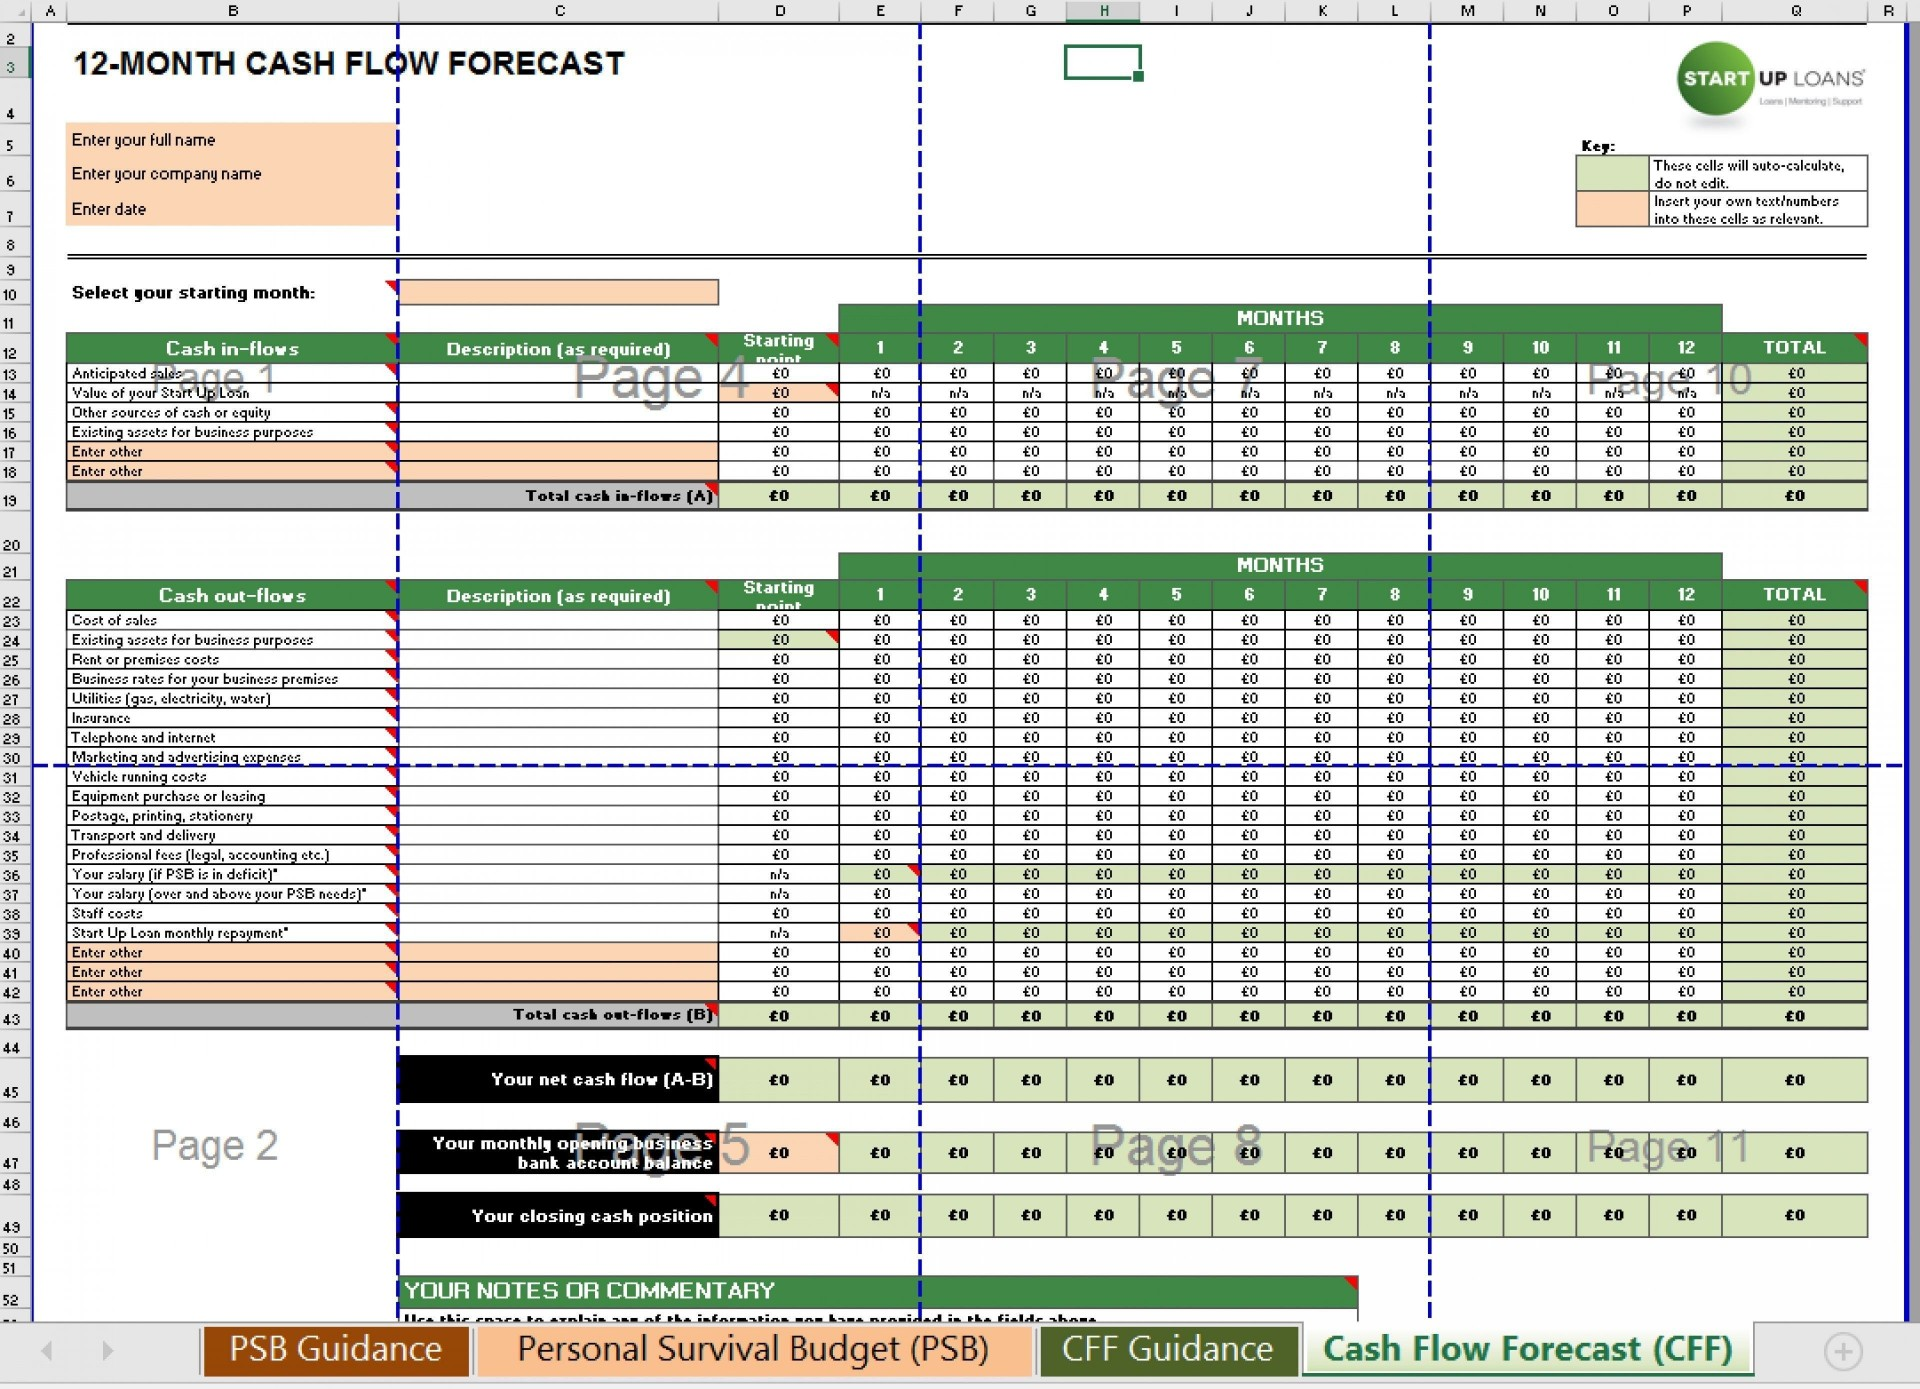 005 Excellent Microsoft Excel Weekly Cash Flow Template High Definition  Forecast1920